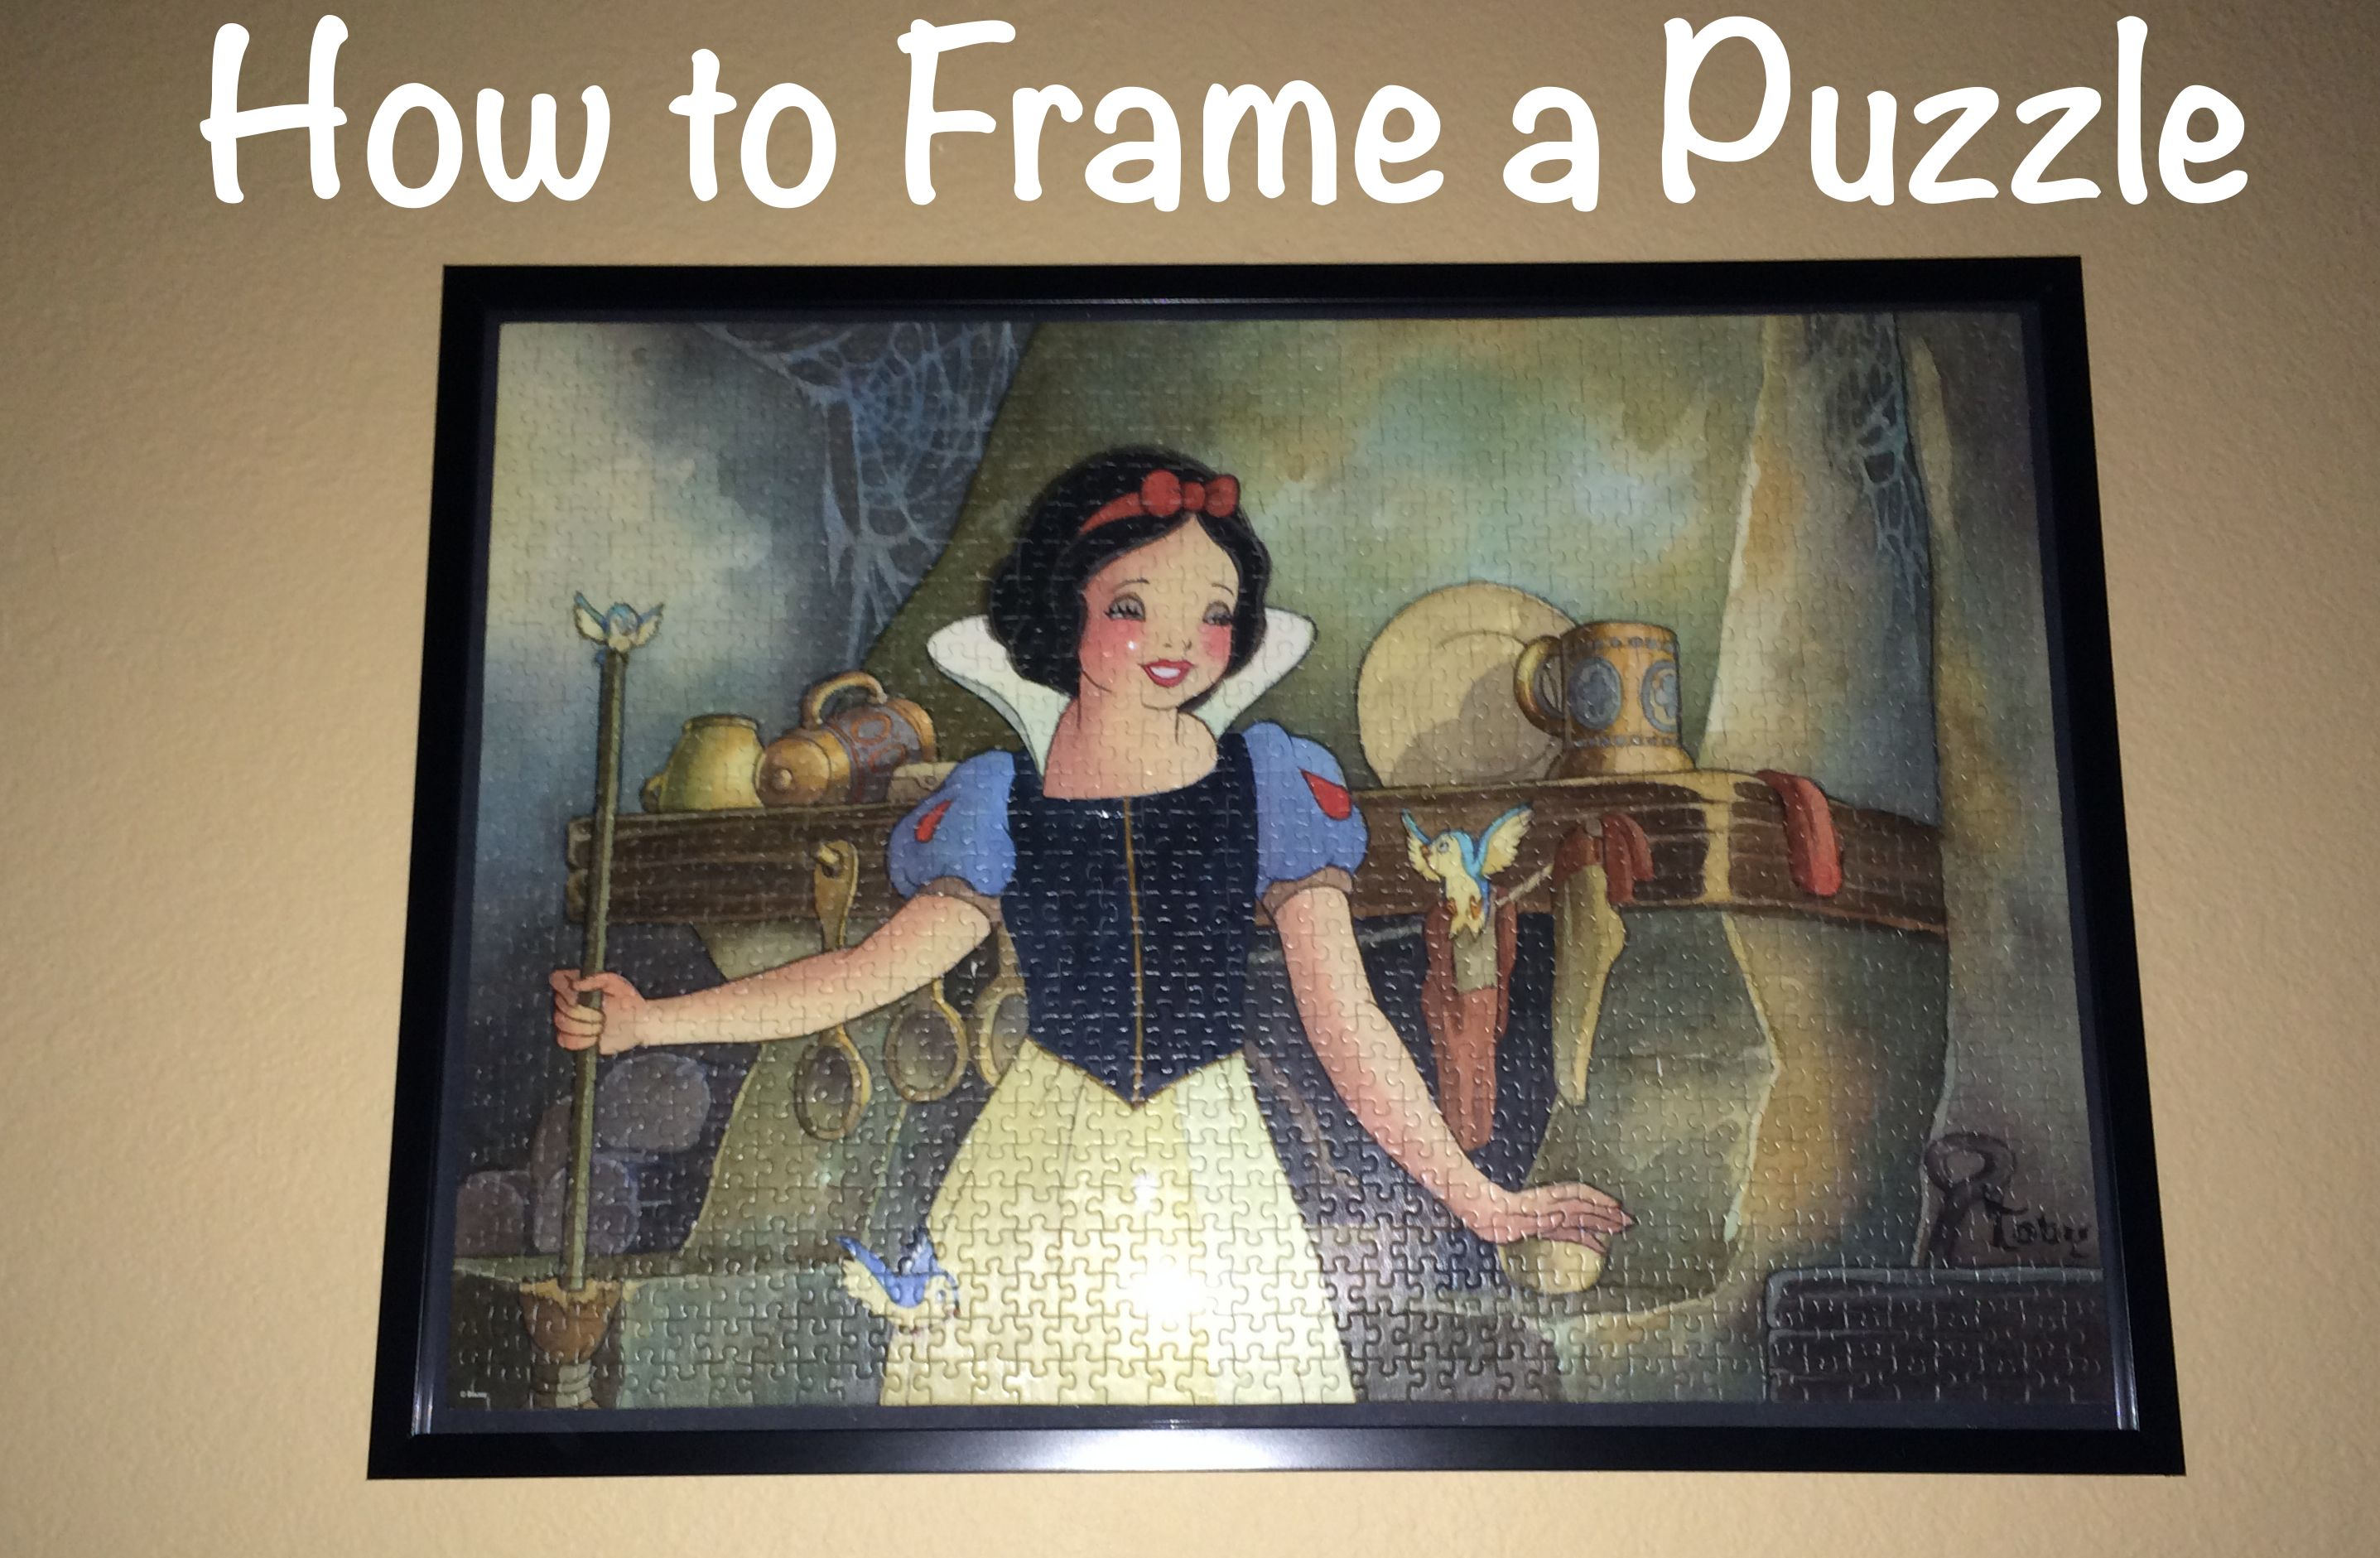 How to frame a puzzle check out the blog to learn how easy it is how to frame a puzzle check out the blog to learn how easy it is jeuxipadfo Gallery